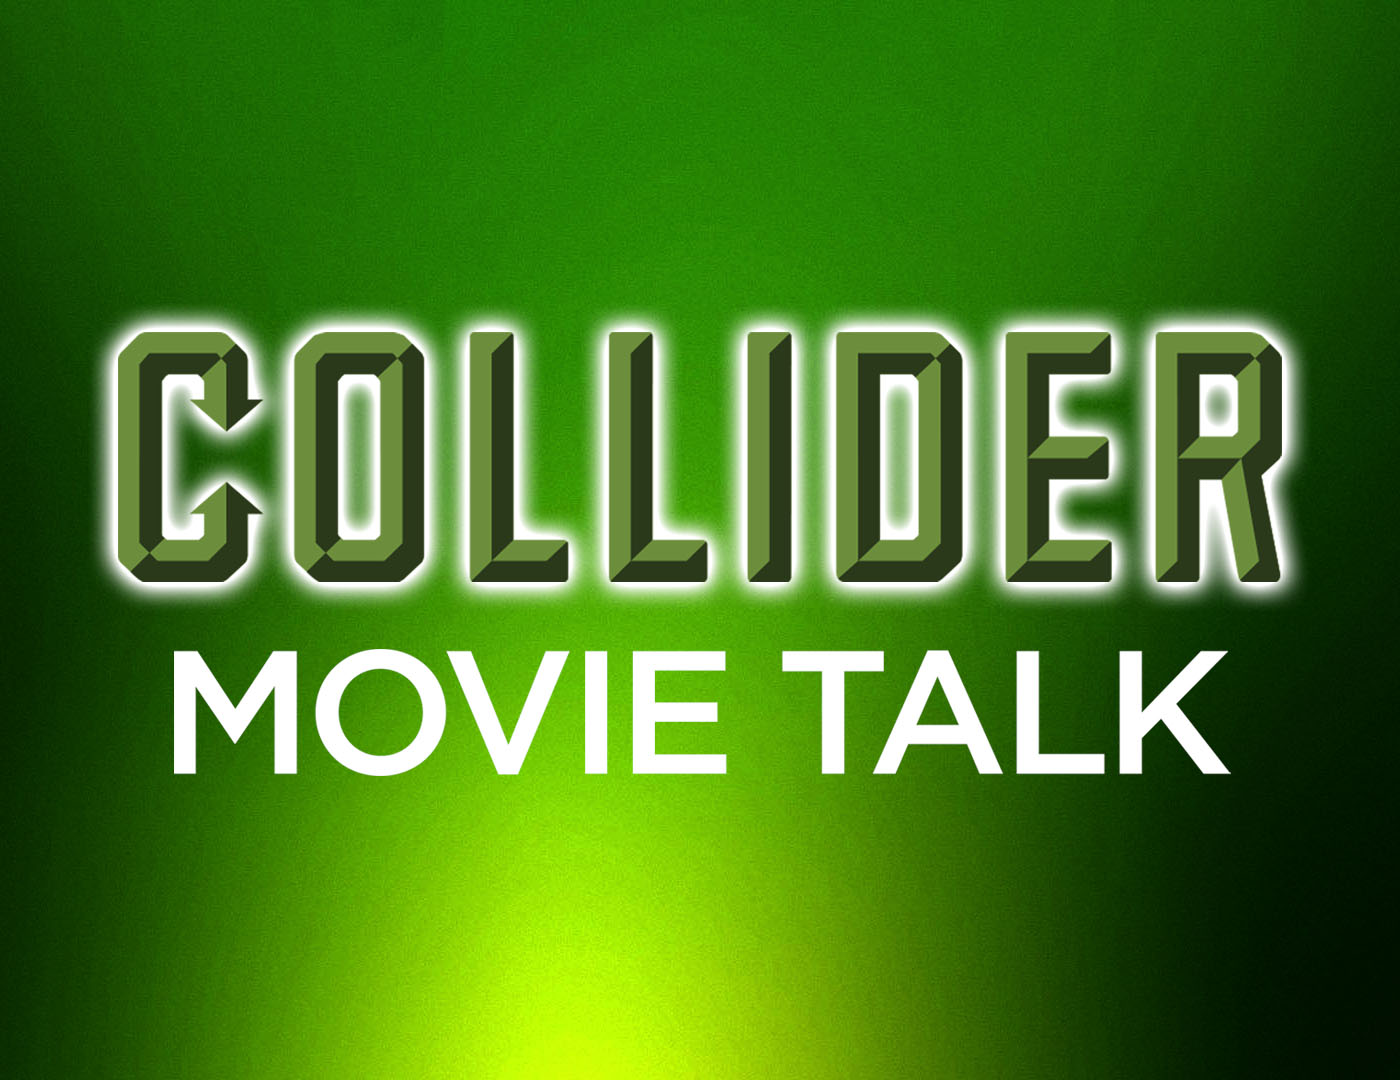 Collider Movie Talk - New Star Wars: The Force Awakens Spot Is Best Trailer Yet!